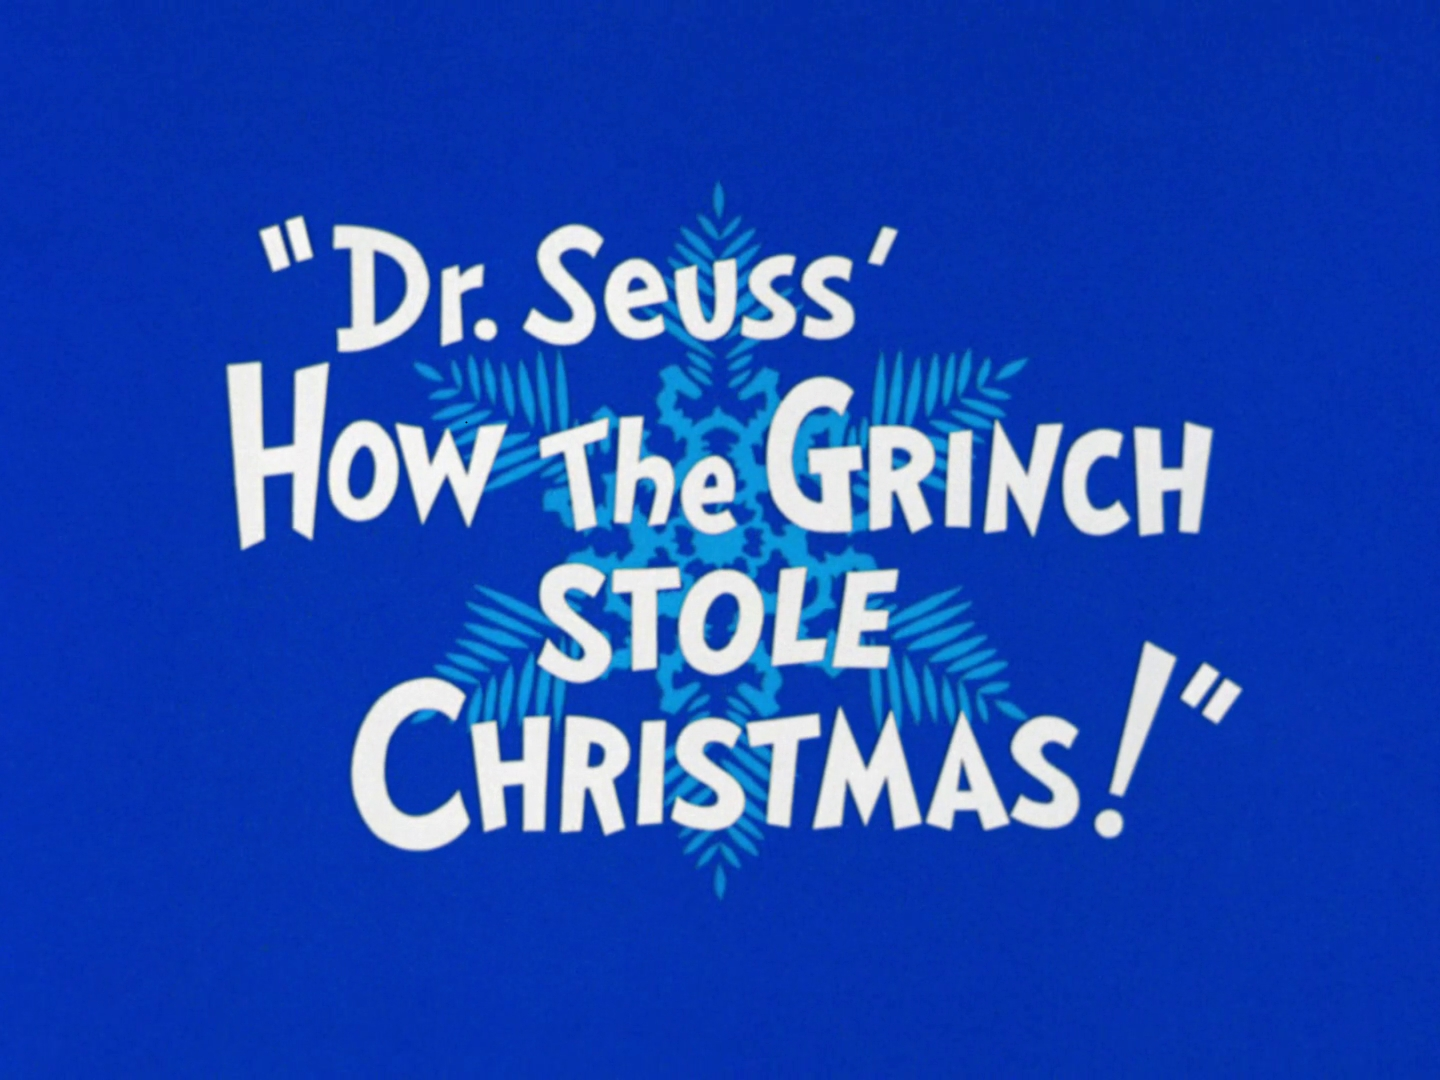 title grinch - When Does How The Grinch Stole Christmas Come On Tv